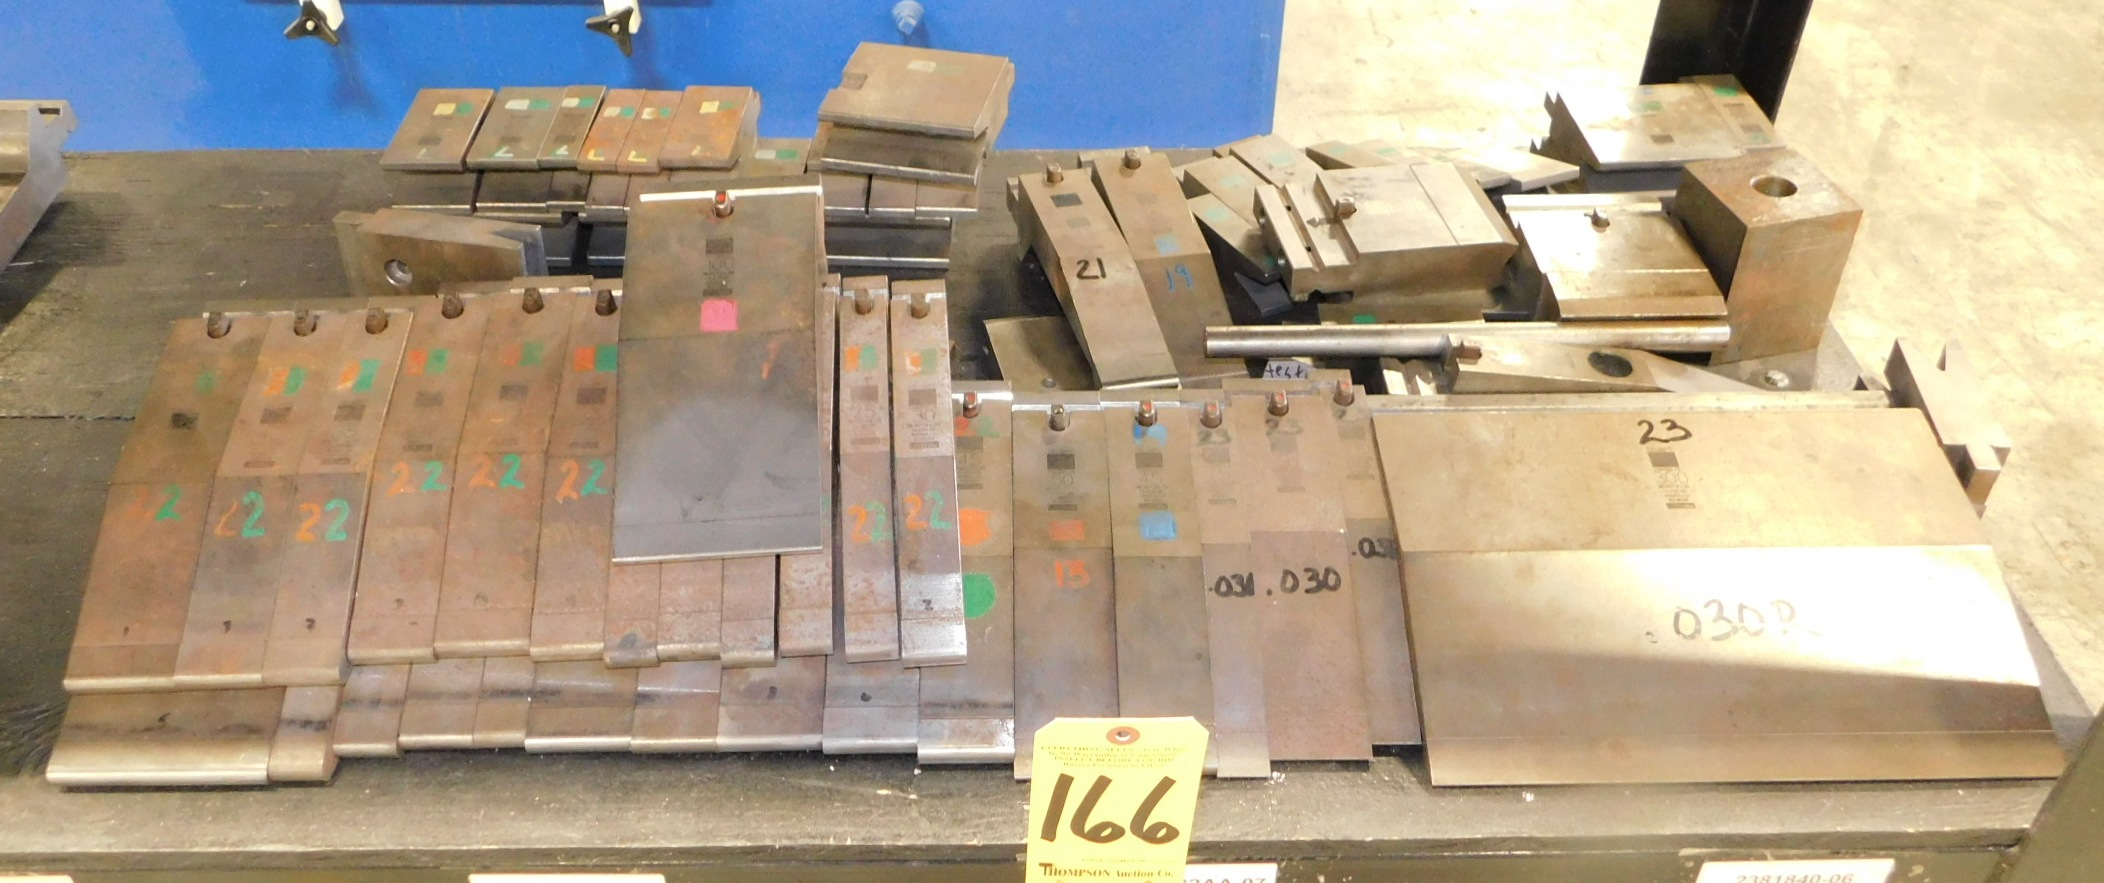 Lot 166 - Trumpf Press Brake Tooling